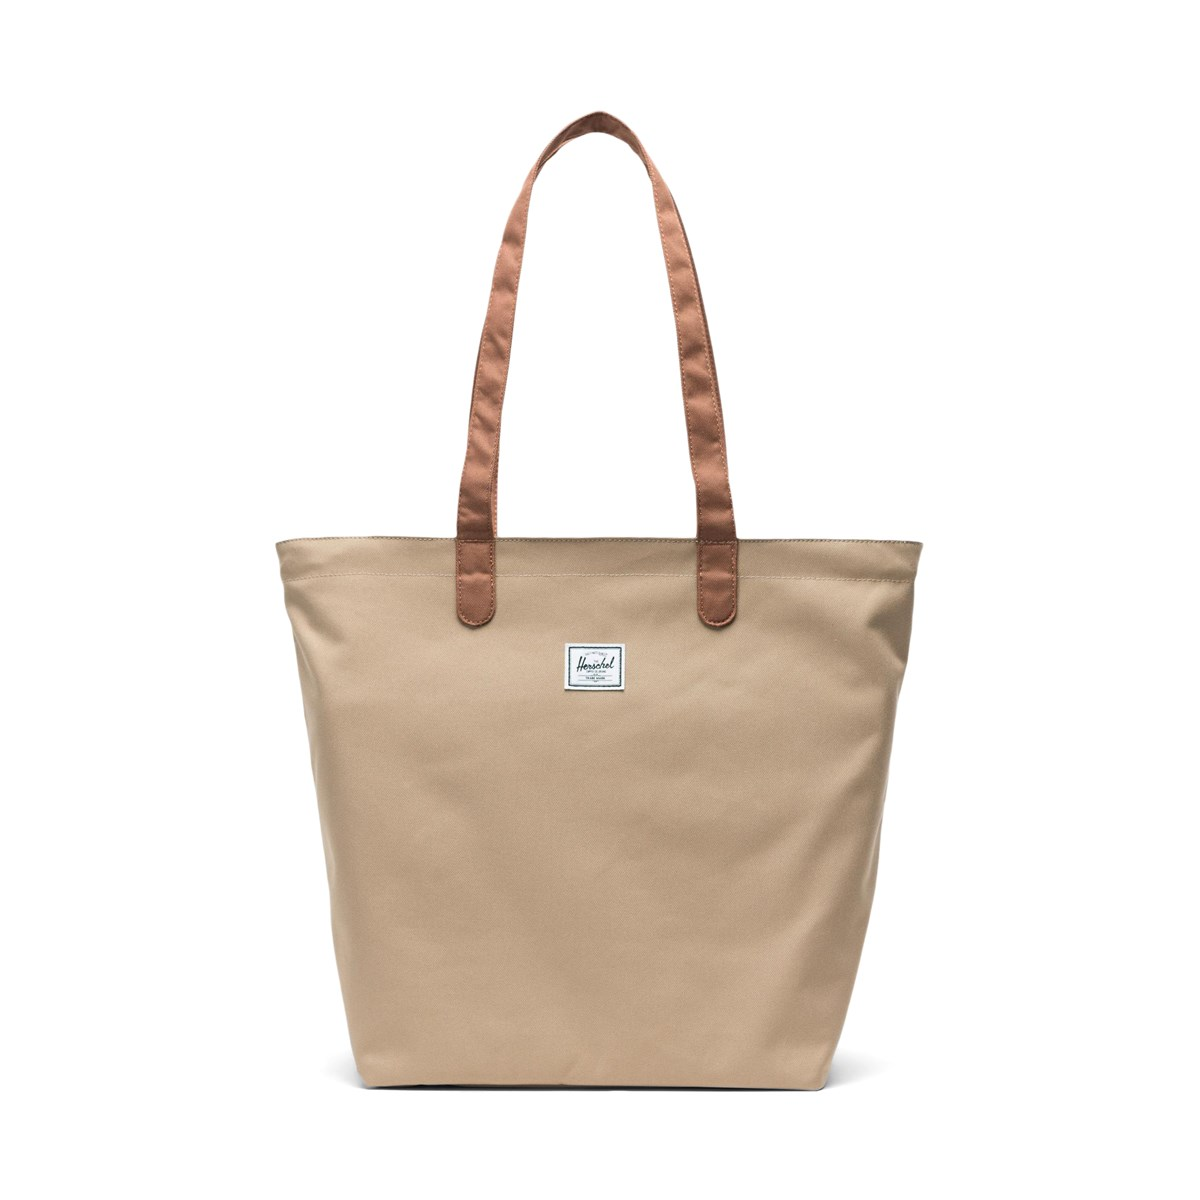 Mica Tote Bag in Beige